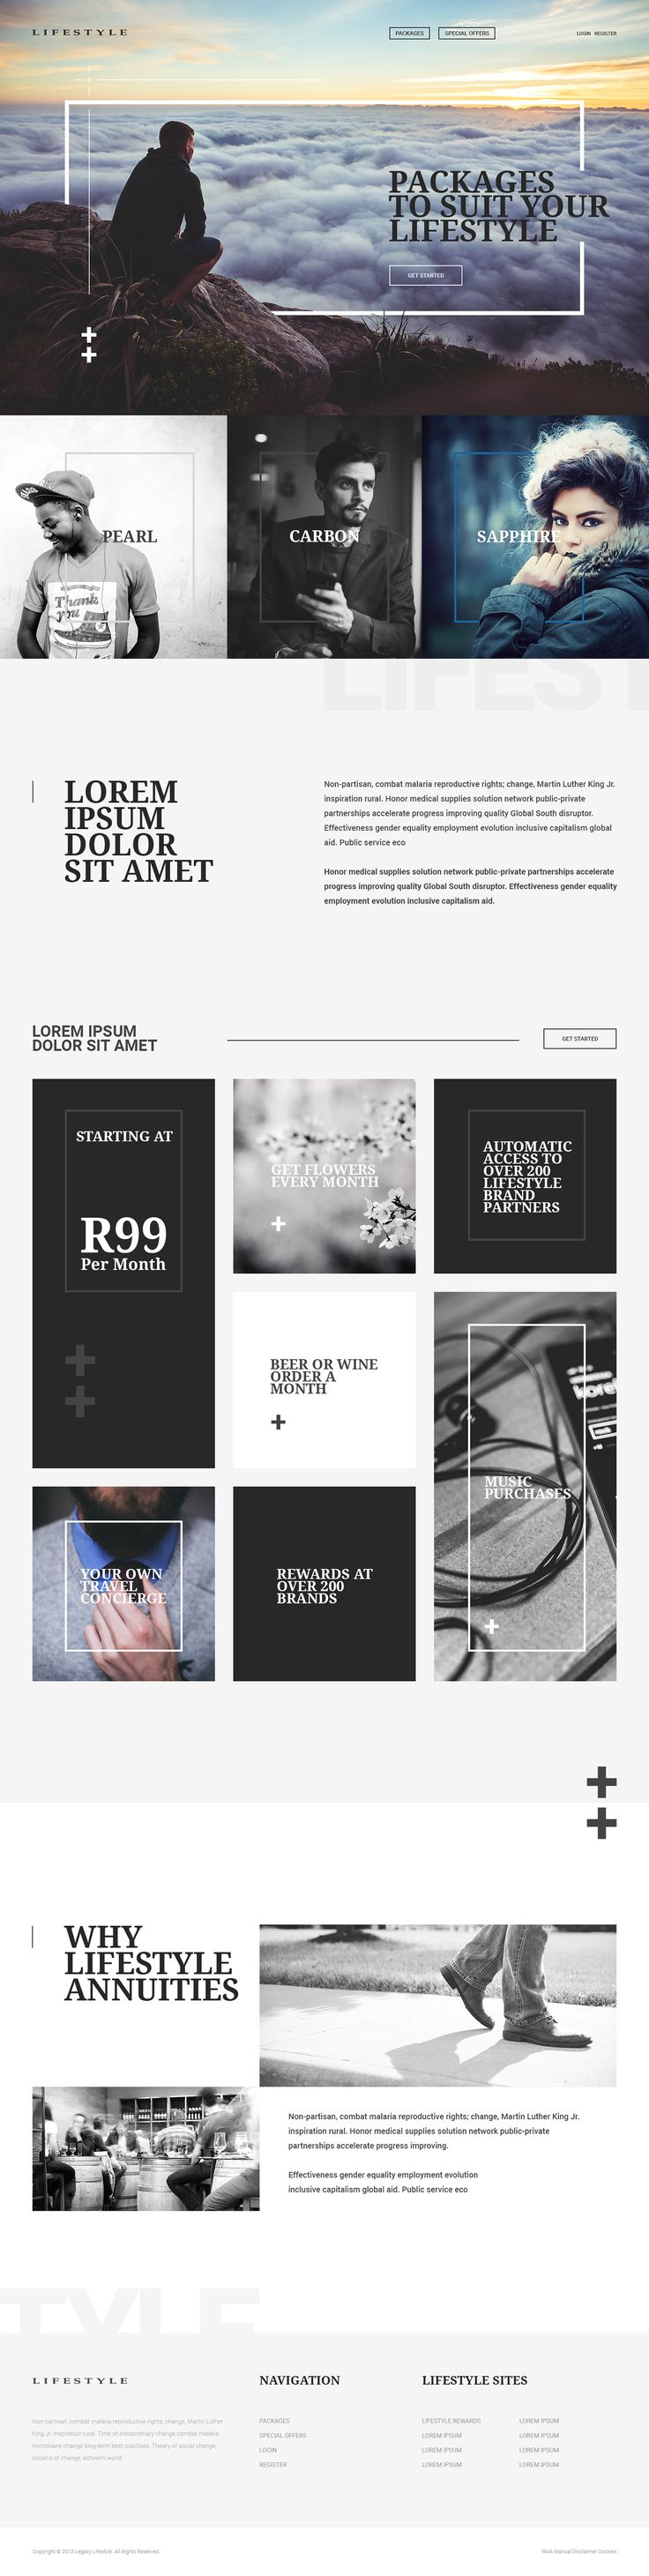 //  #WebDesign #GraphicDesign #Inspiration